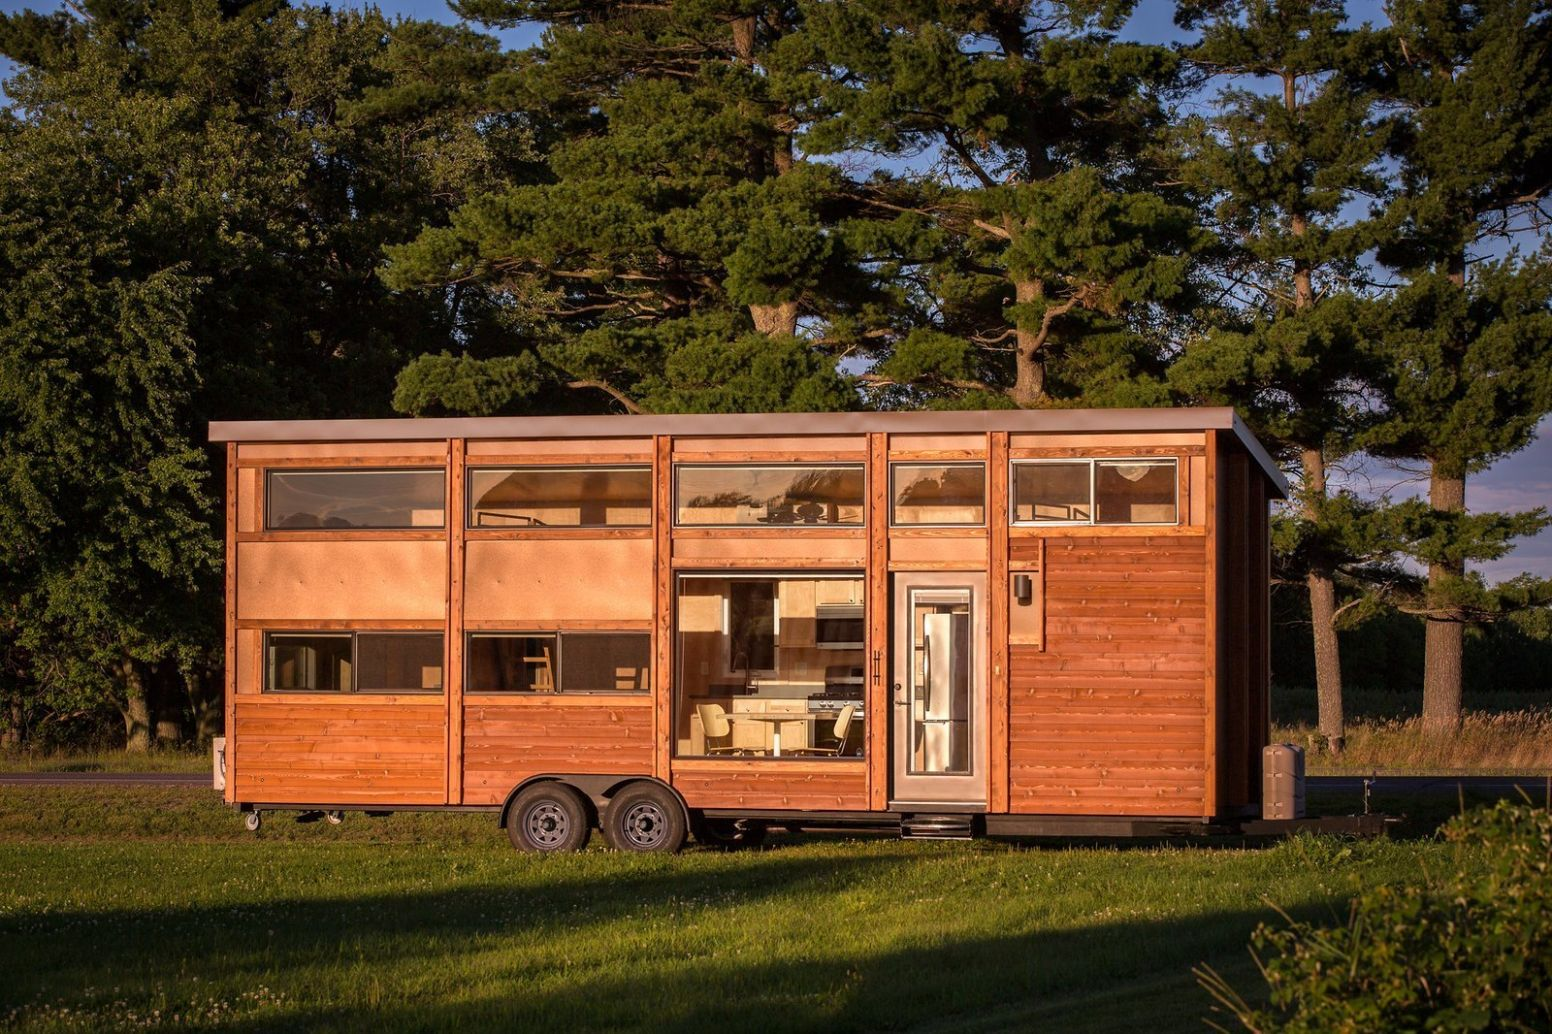 The Largest Tiny Home Resort in the Midwest Is Now Open - Dwell